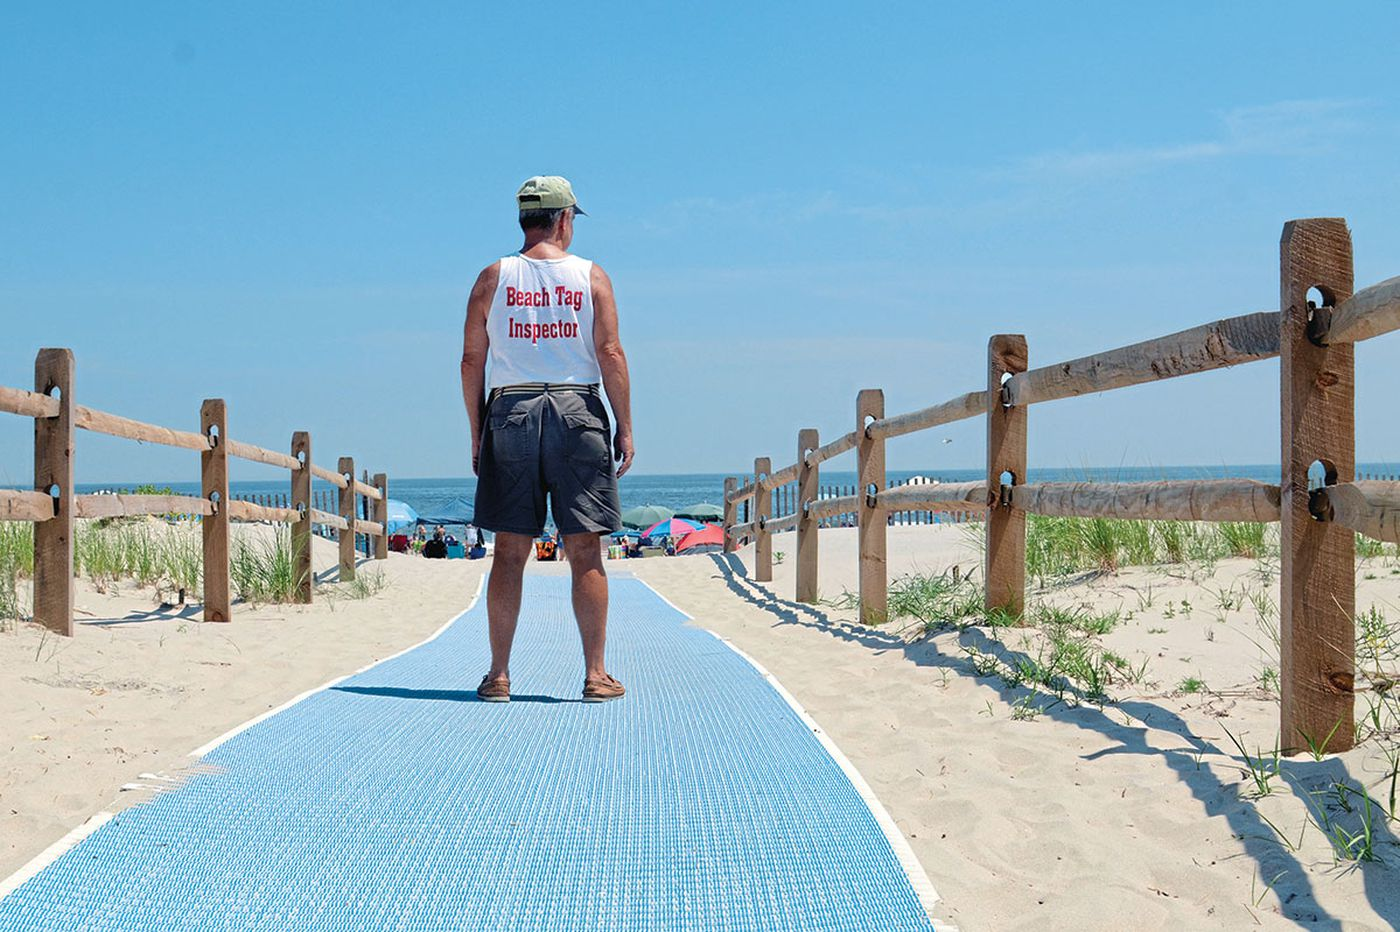 Battle over beach tags: Should Jersey Shore towns require them? Pro/con | Opinion